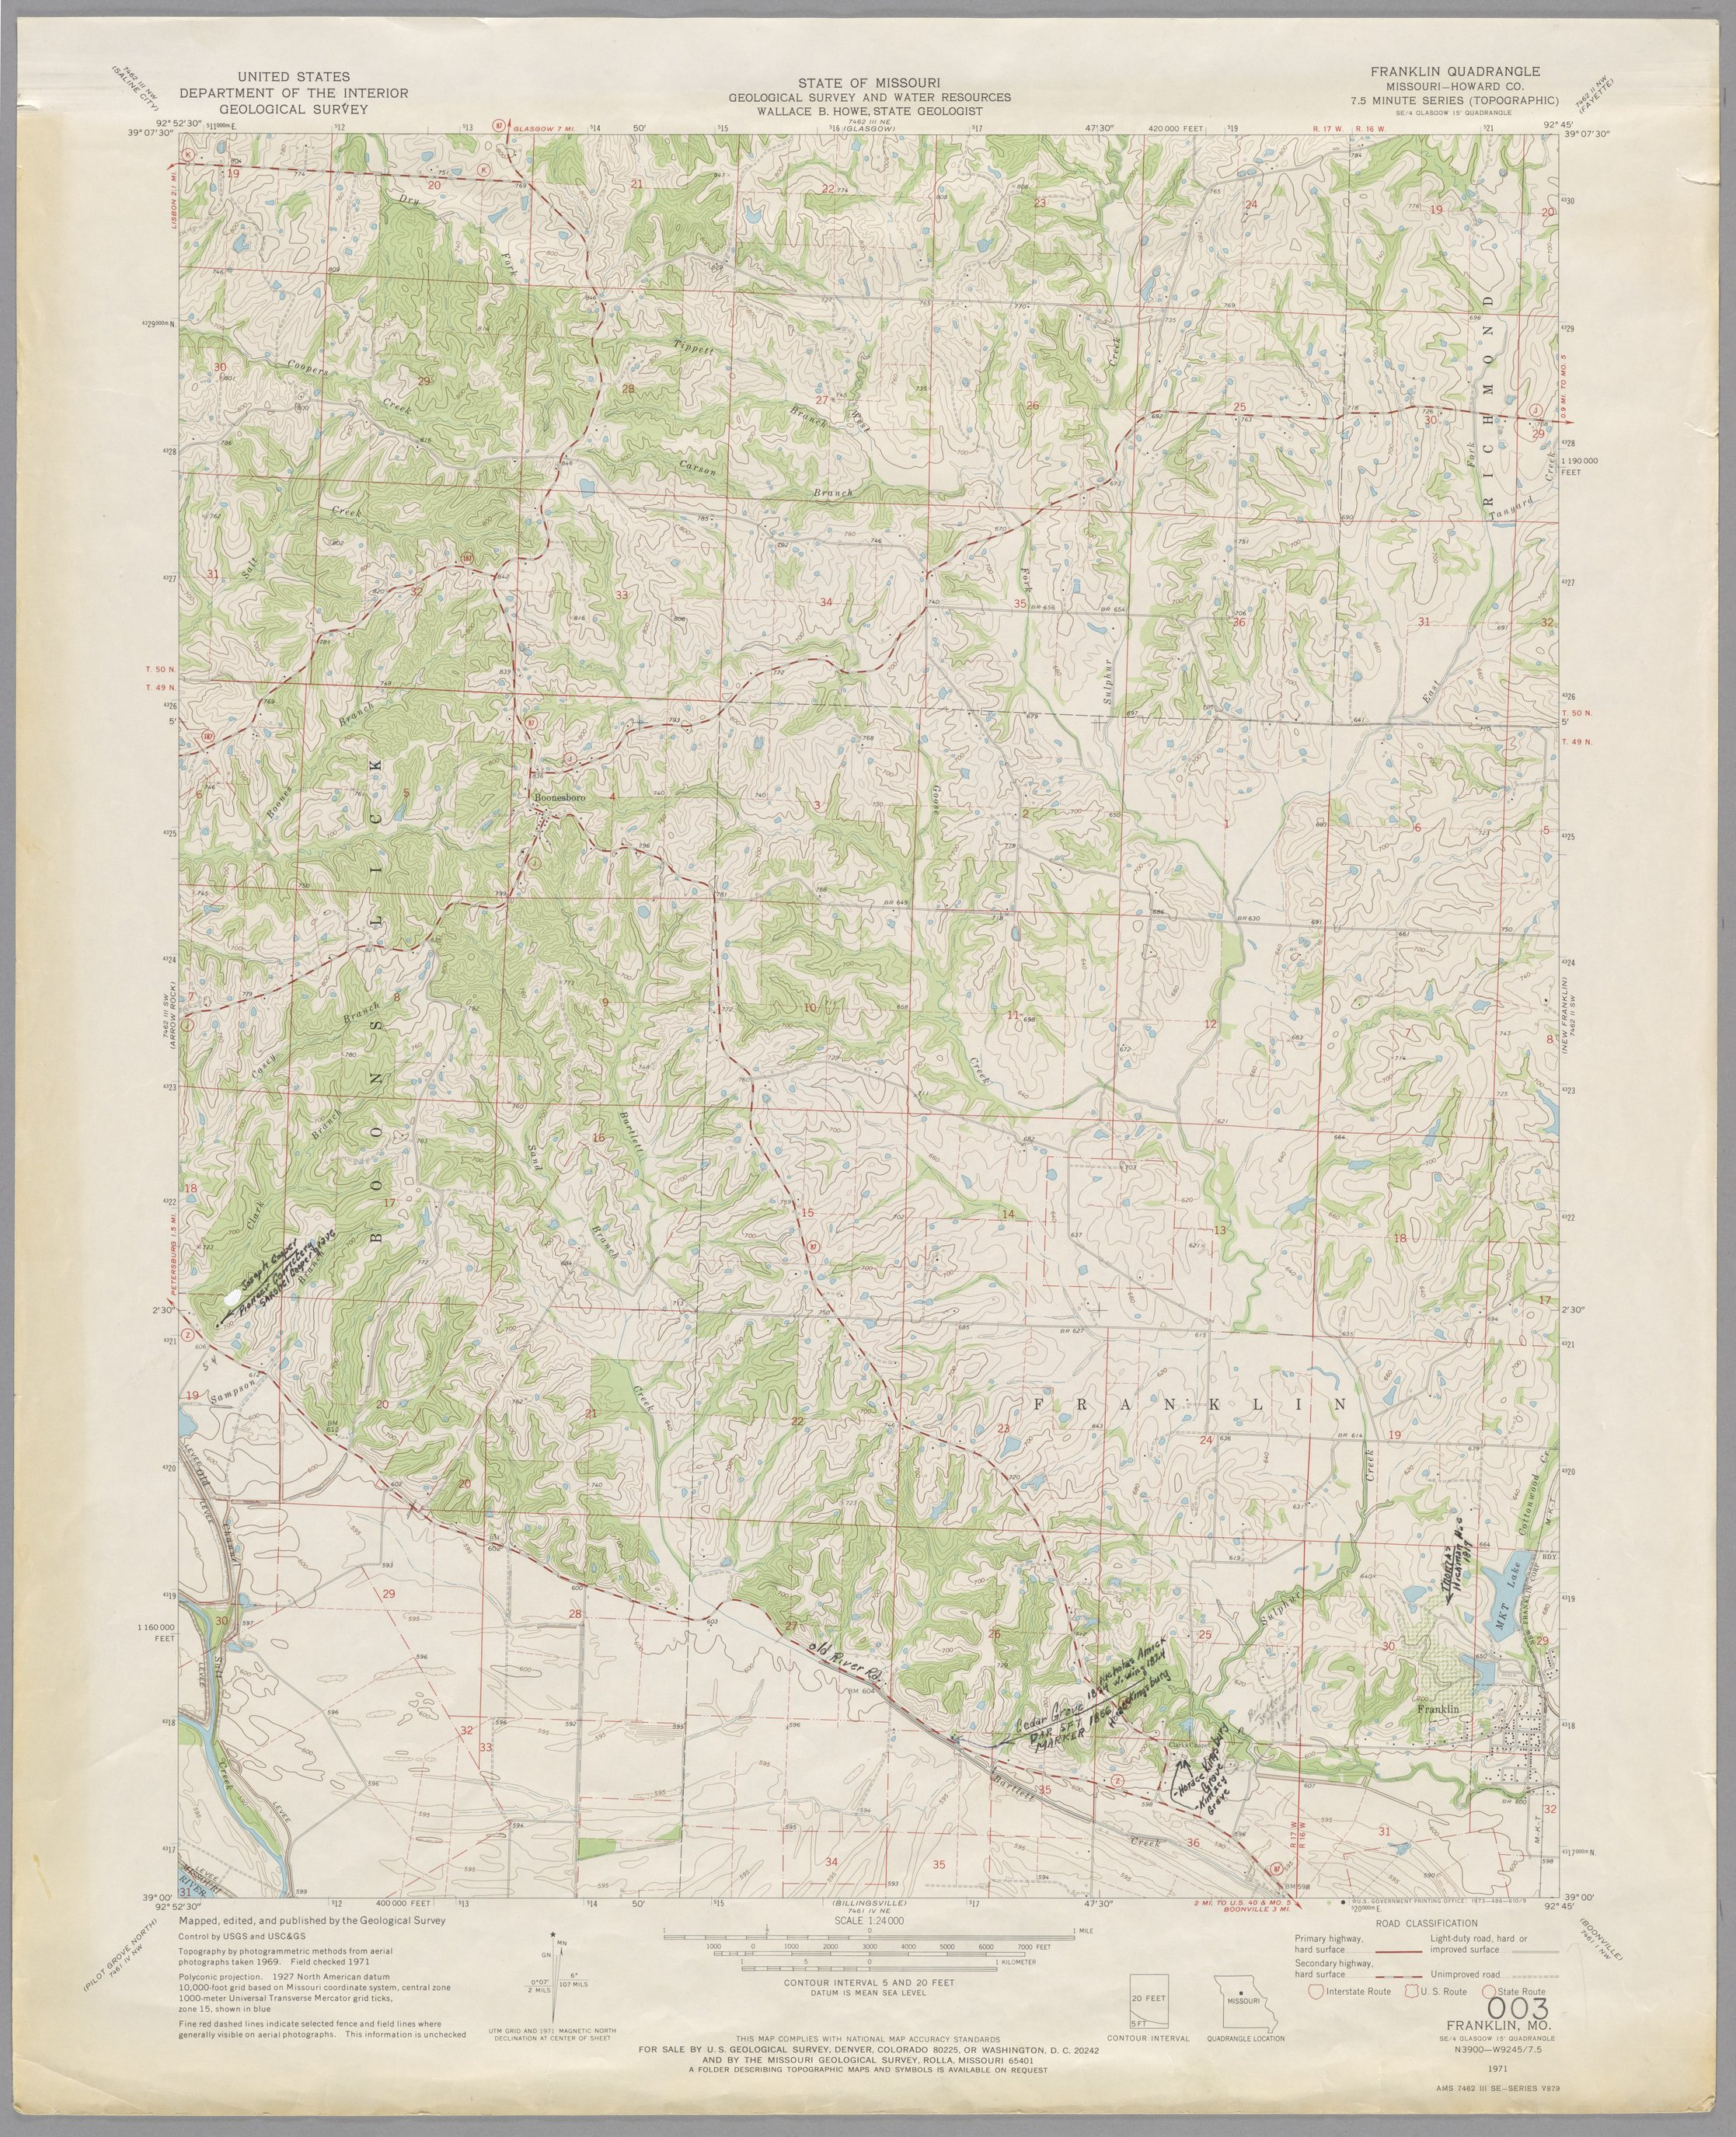 Kroh Collection. Group 1: Santa Fe Trail - Map 003: Franklin quadrangle, showing the early (1820s-1840s) route of the Santa Fe Trail in Missouri